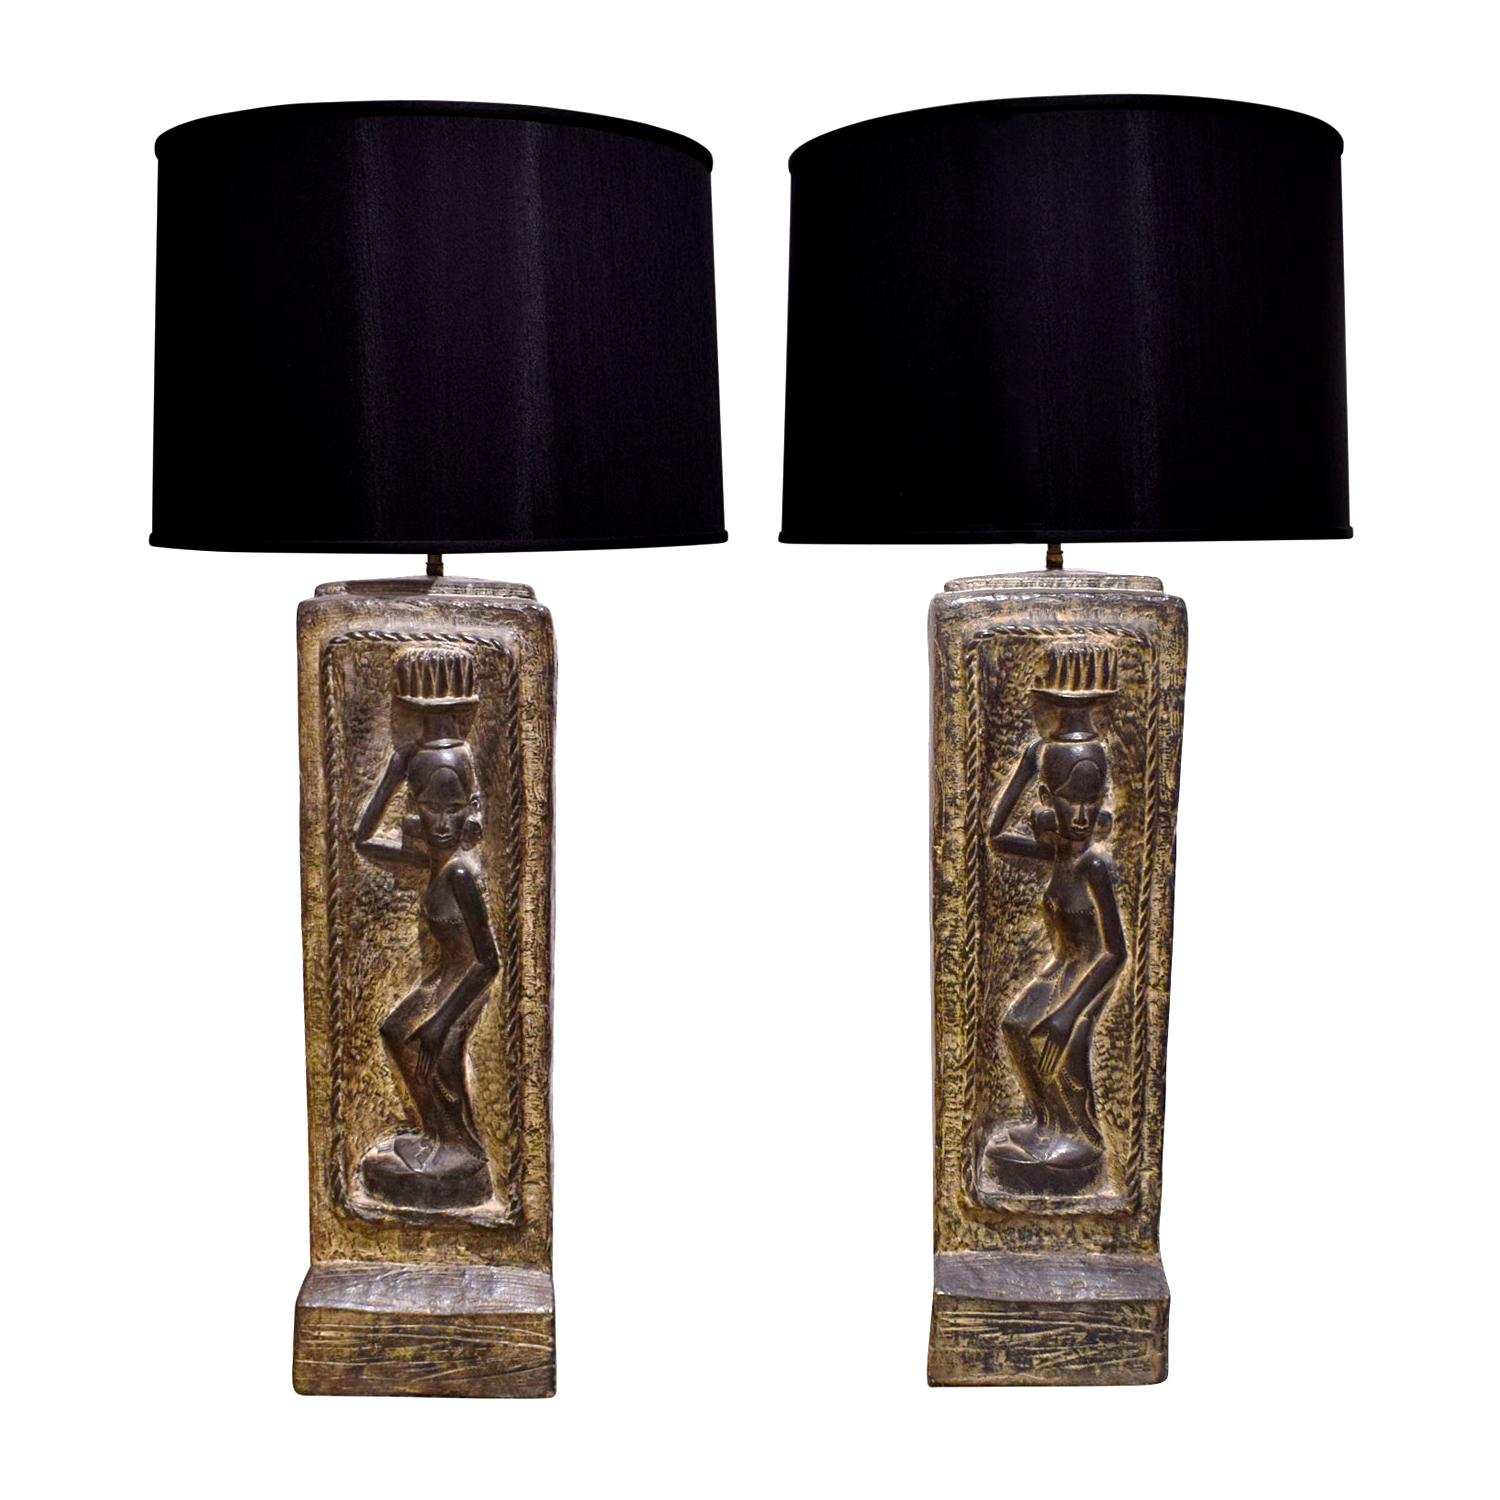 Ben Wilson Pair of Large Plaster Table Lamps, 1950s